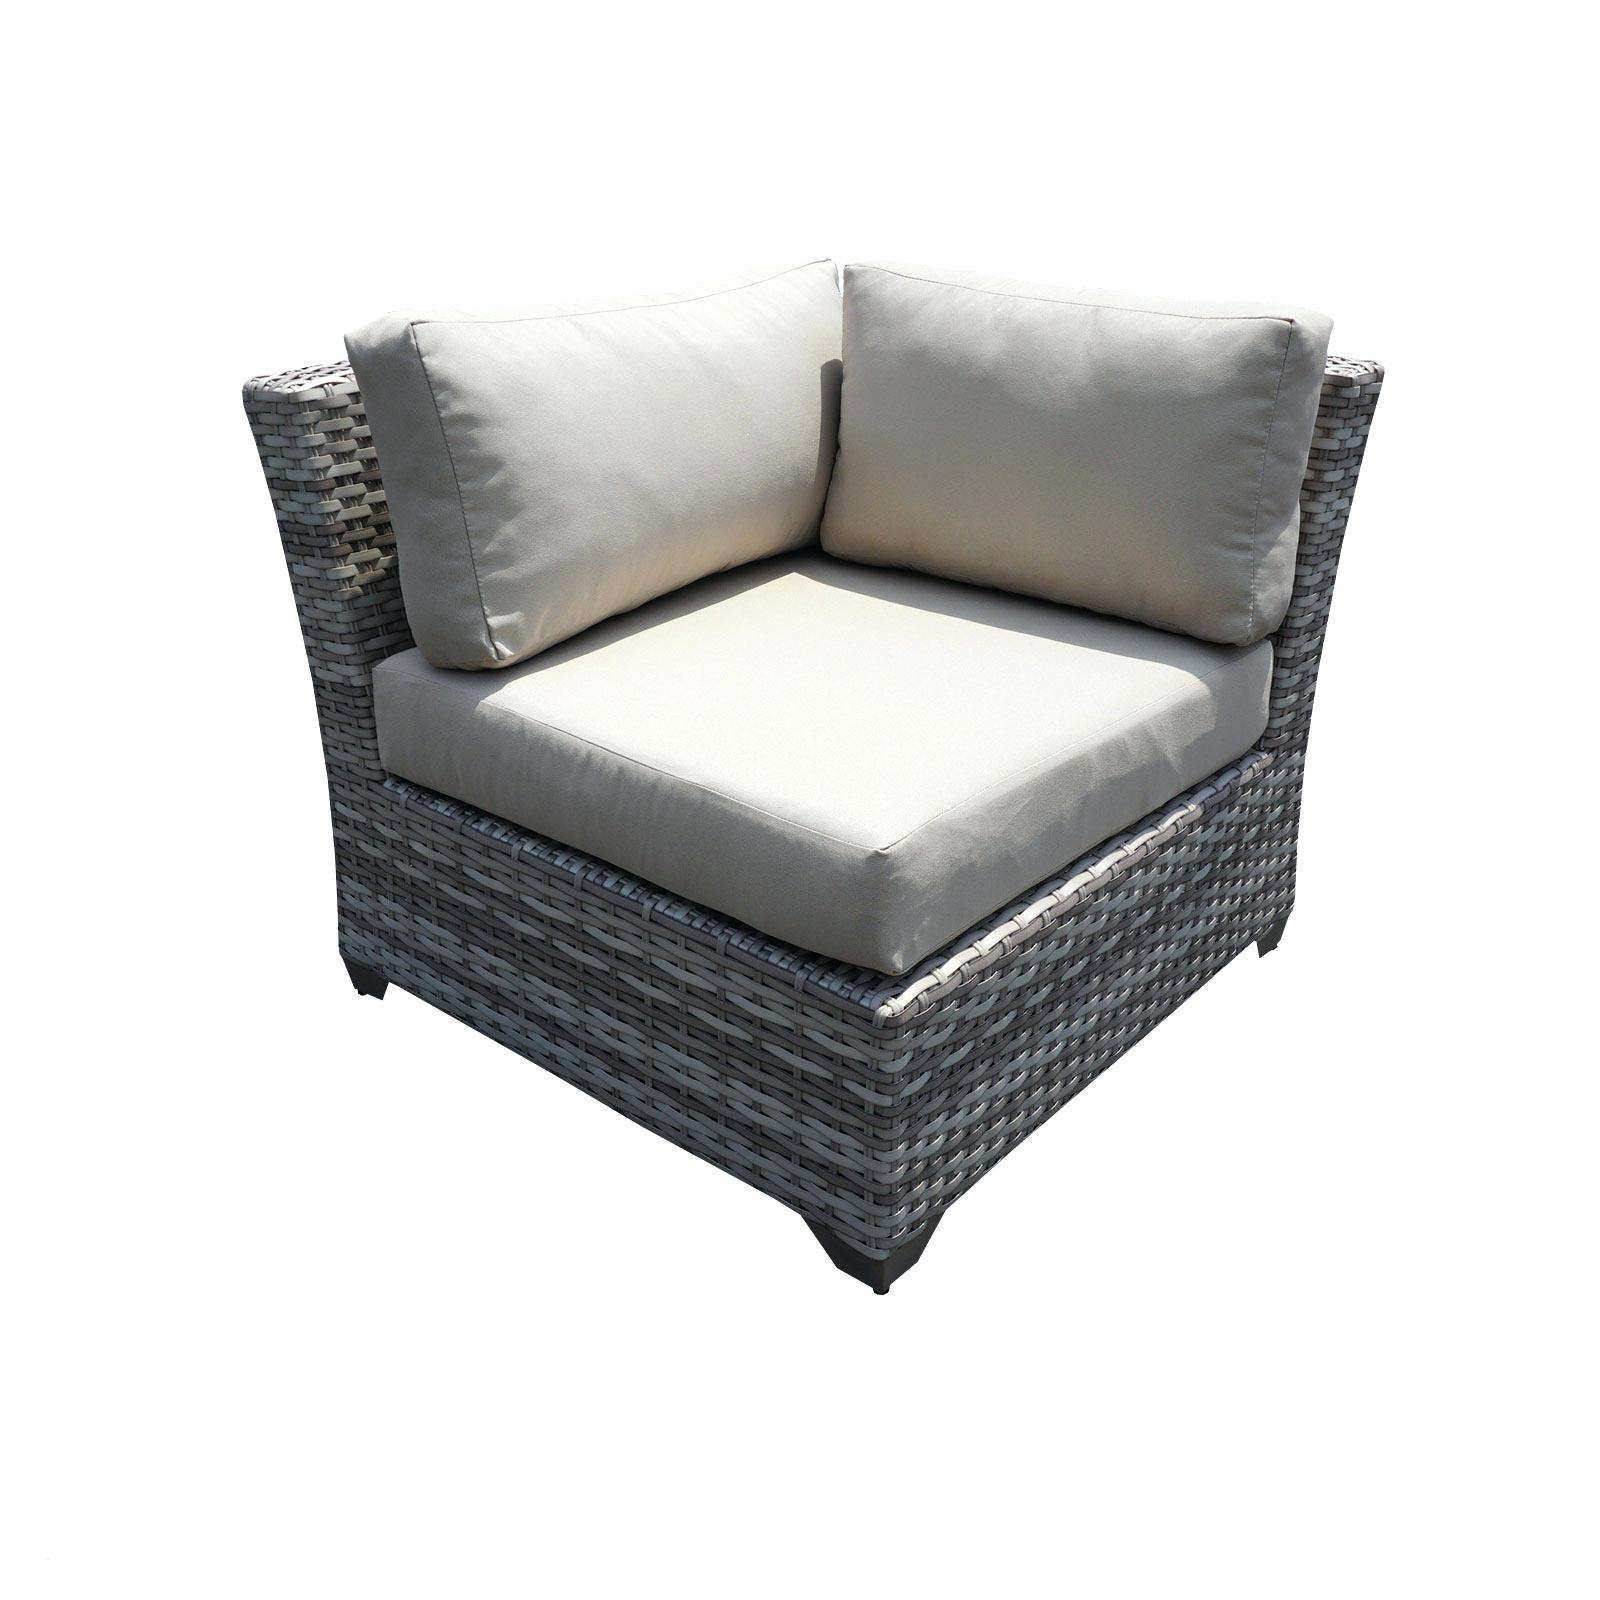 Orange sofa Awesome Patio Covering Lovable Wicker Outdoor sofa 0d